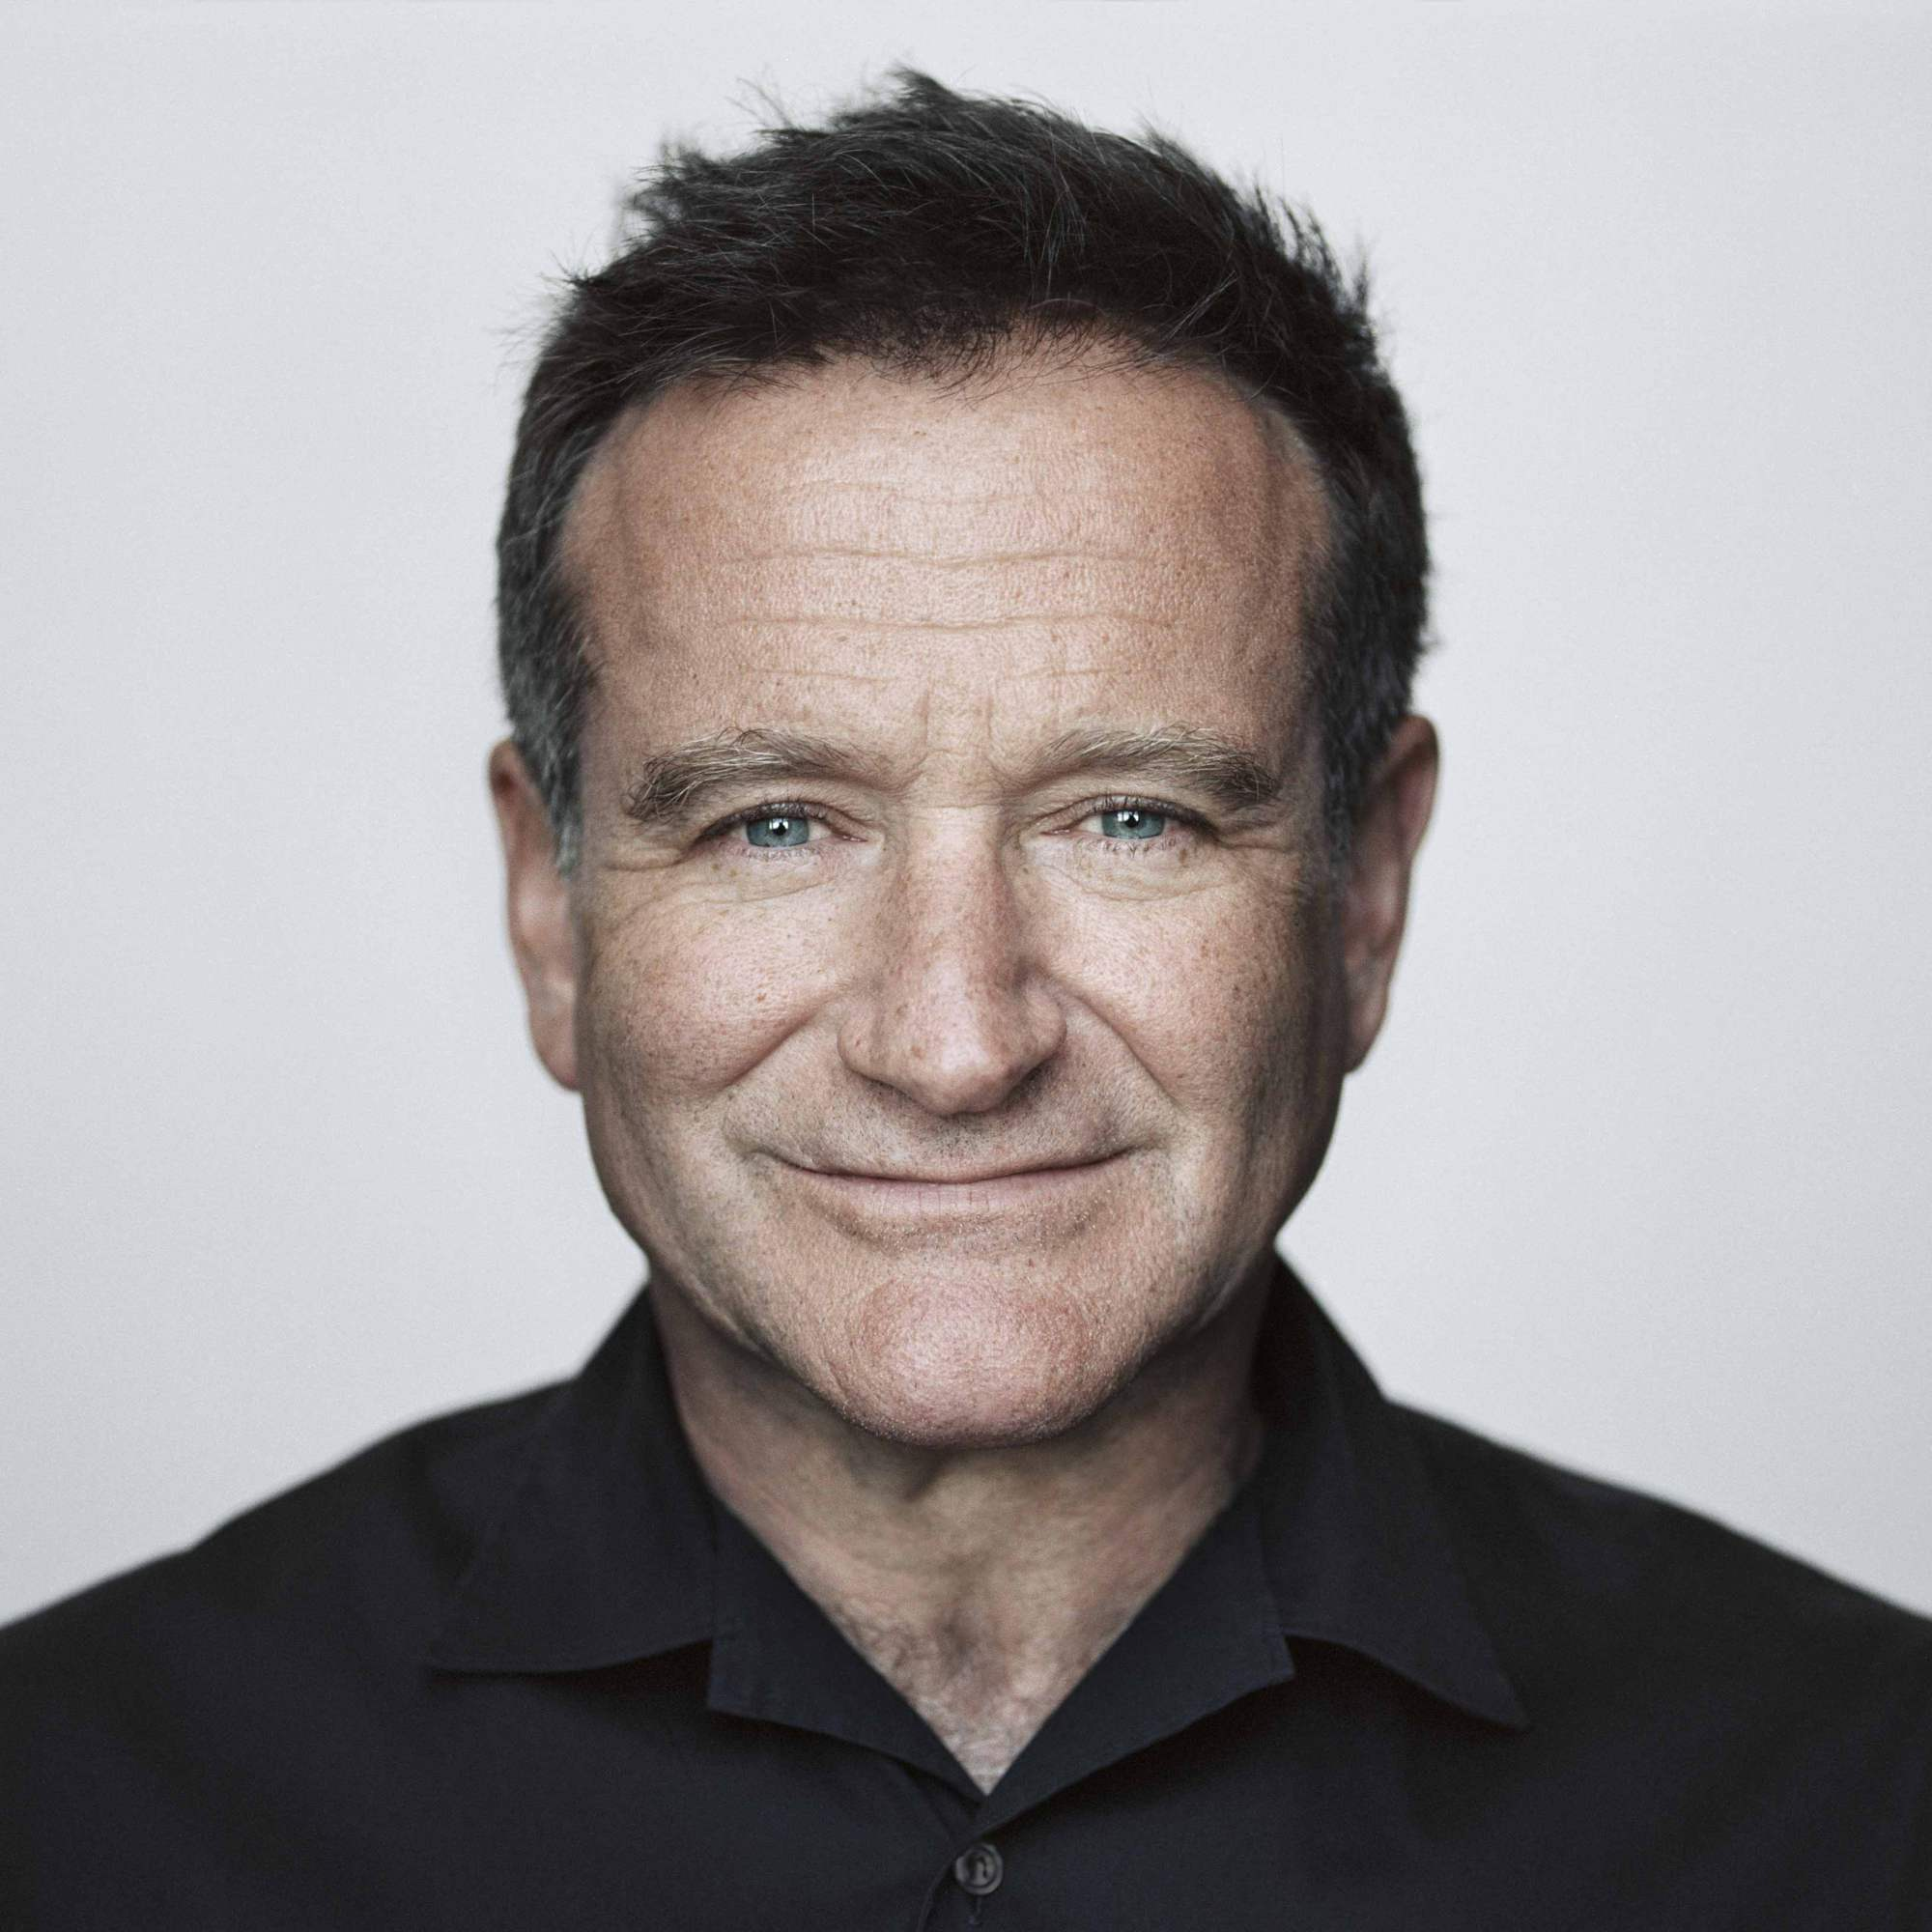 High Quality Robin Williams Wallpapers